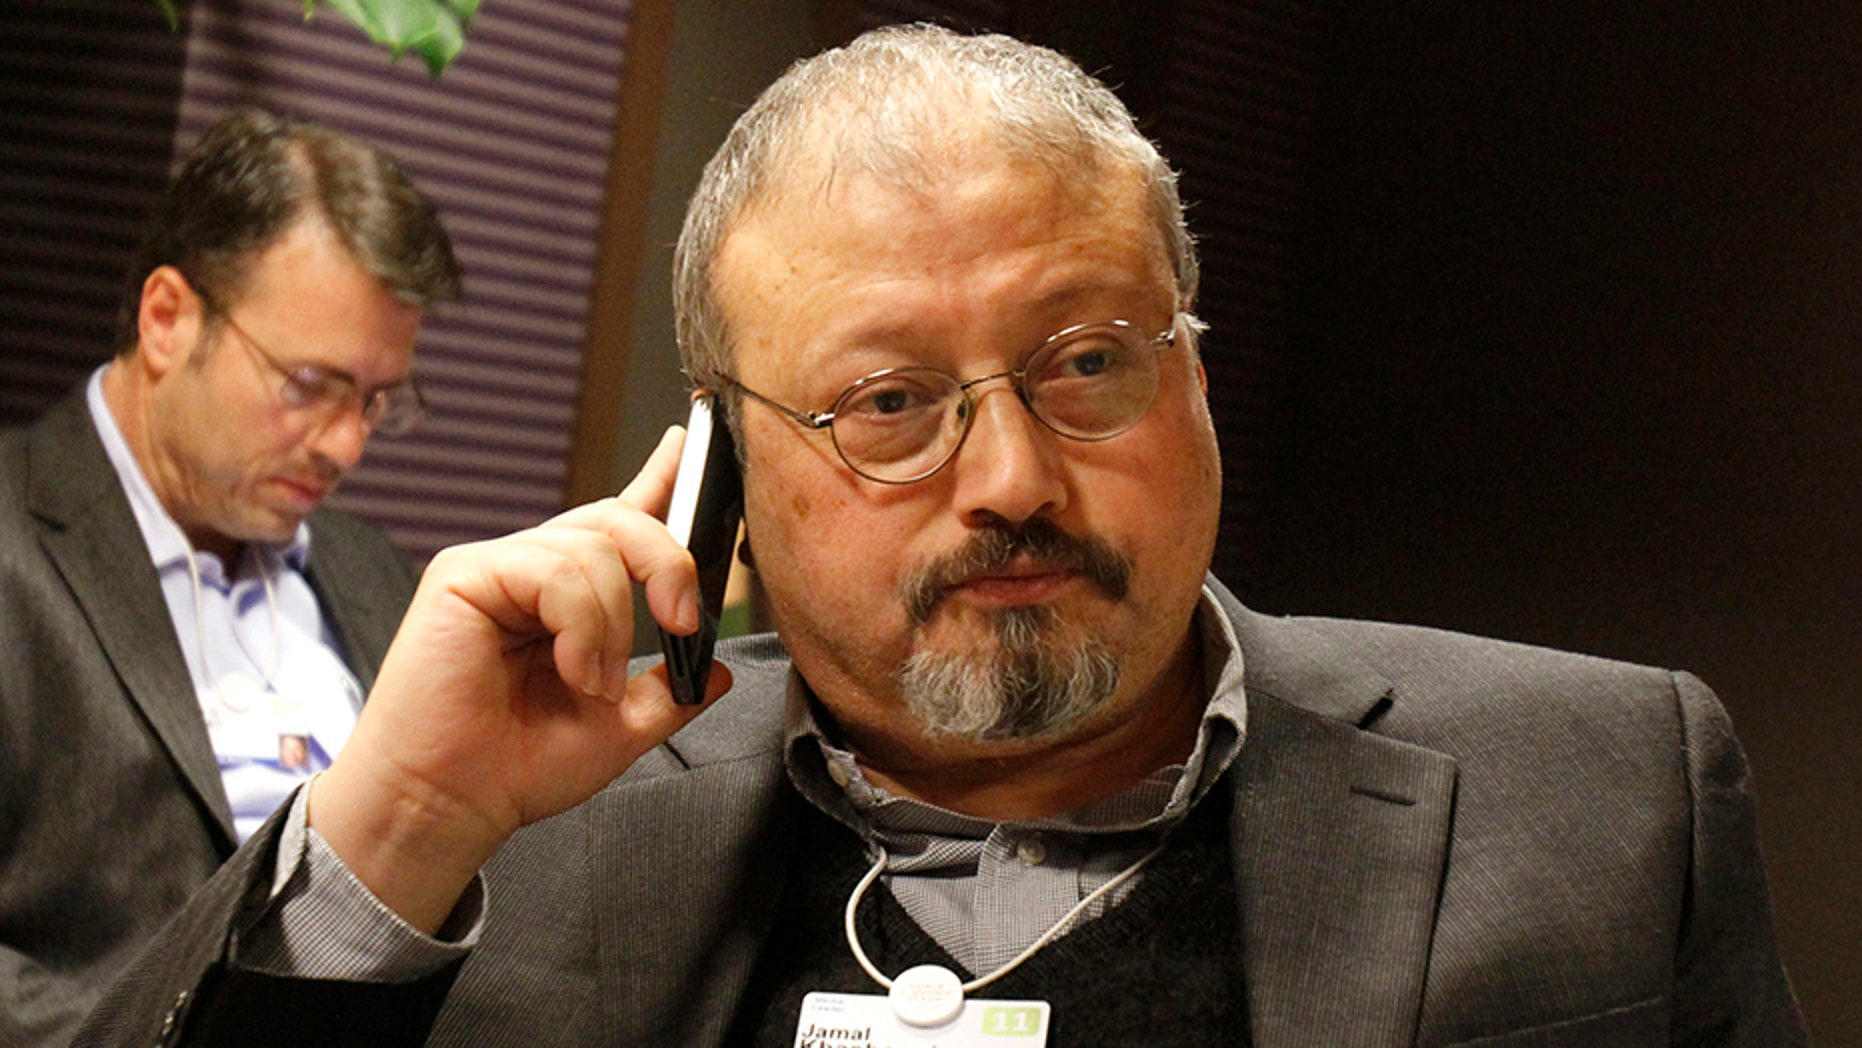 Saudi Arabian journalist Jamal Khashoggi speaks on his cell phone at the World Economic Forum in Davos Switzerland in 2011